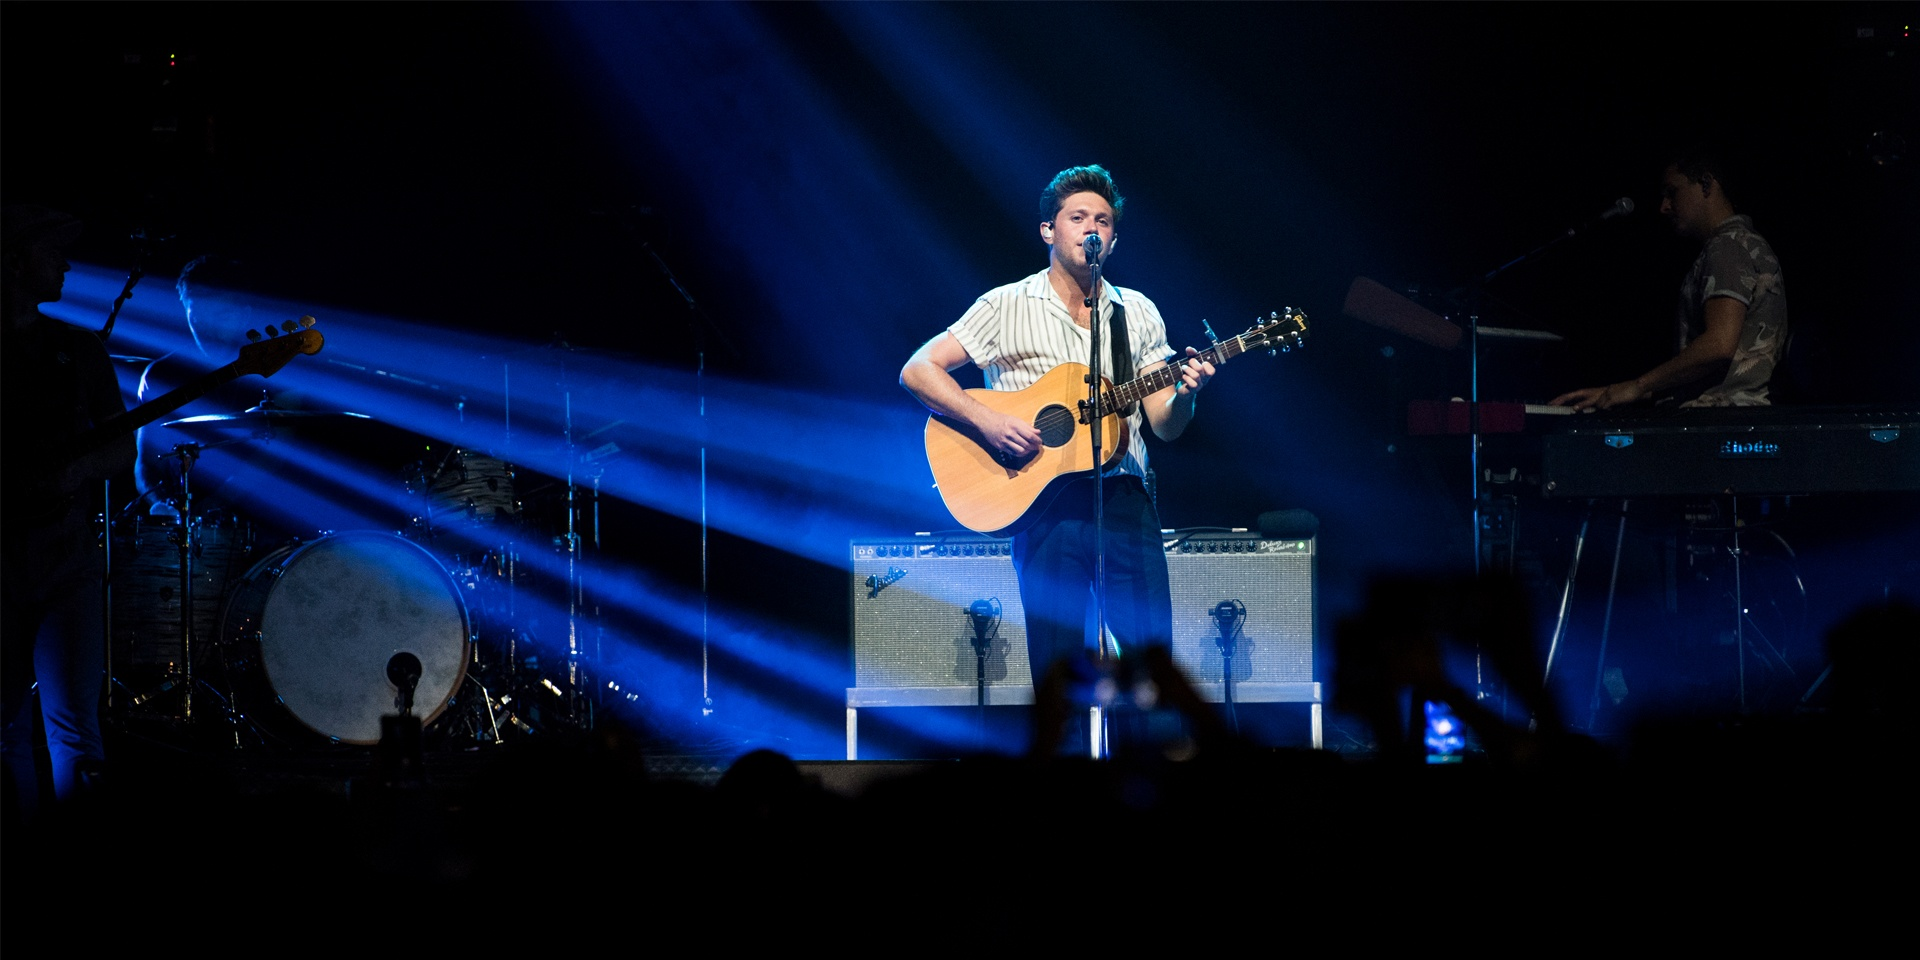 Niall Horan charms and captivates at Singapore concert – gig report